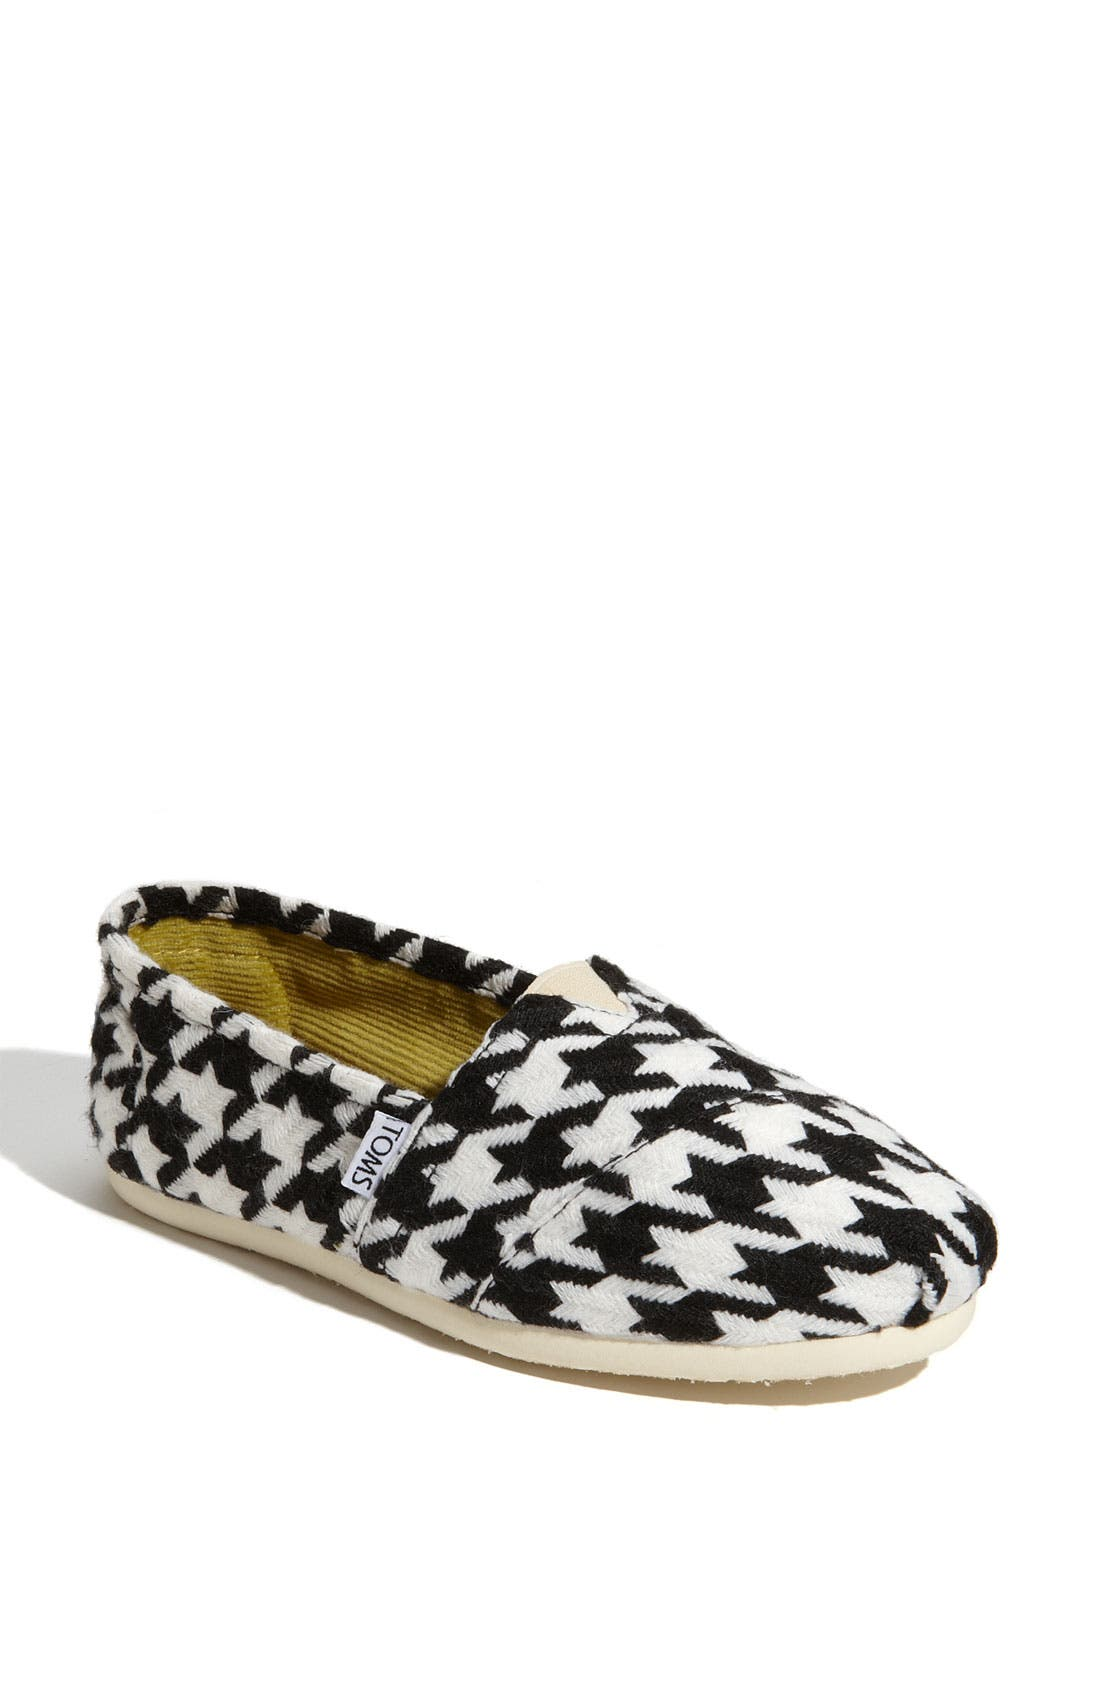 Main Image - TOMS 'Classic - Scottish Houndstooth' Slip-On